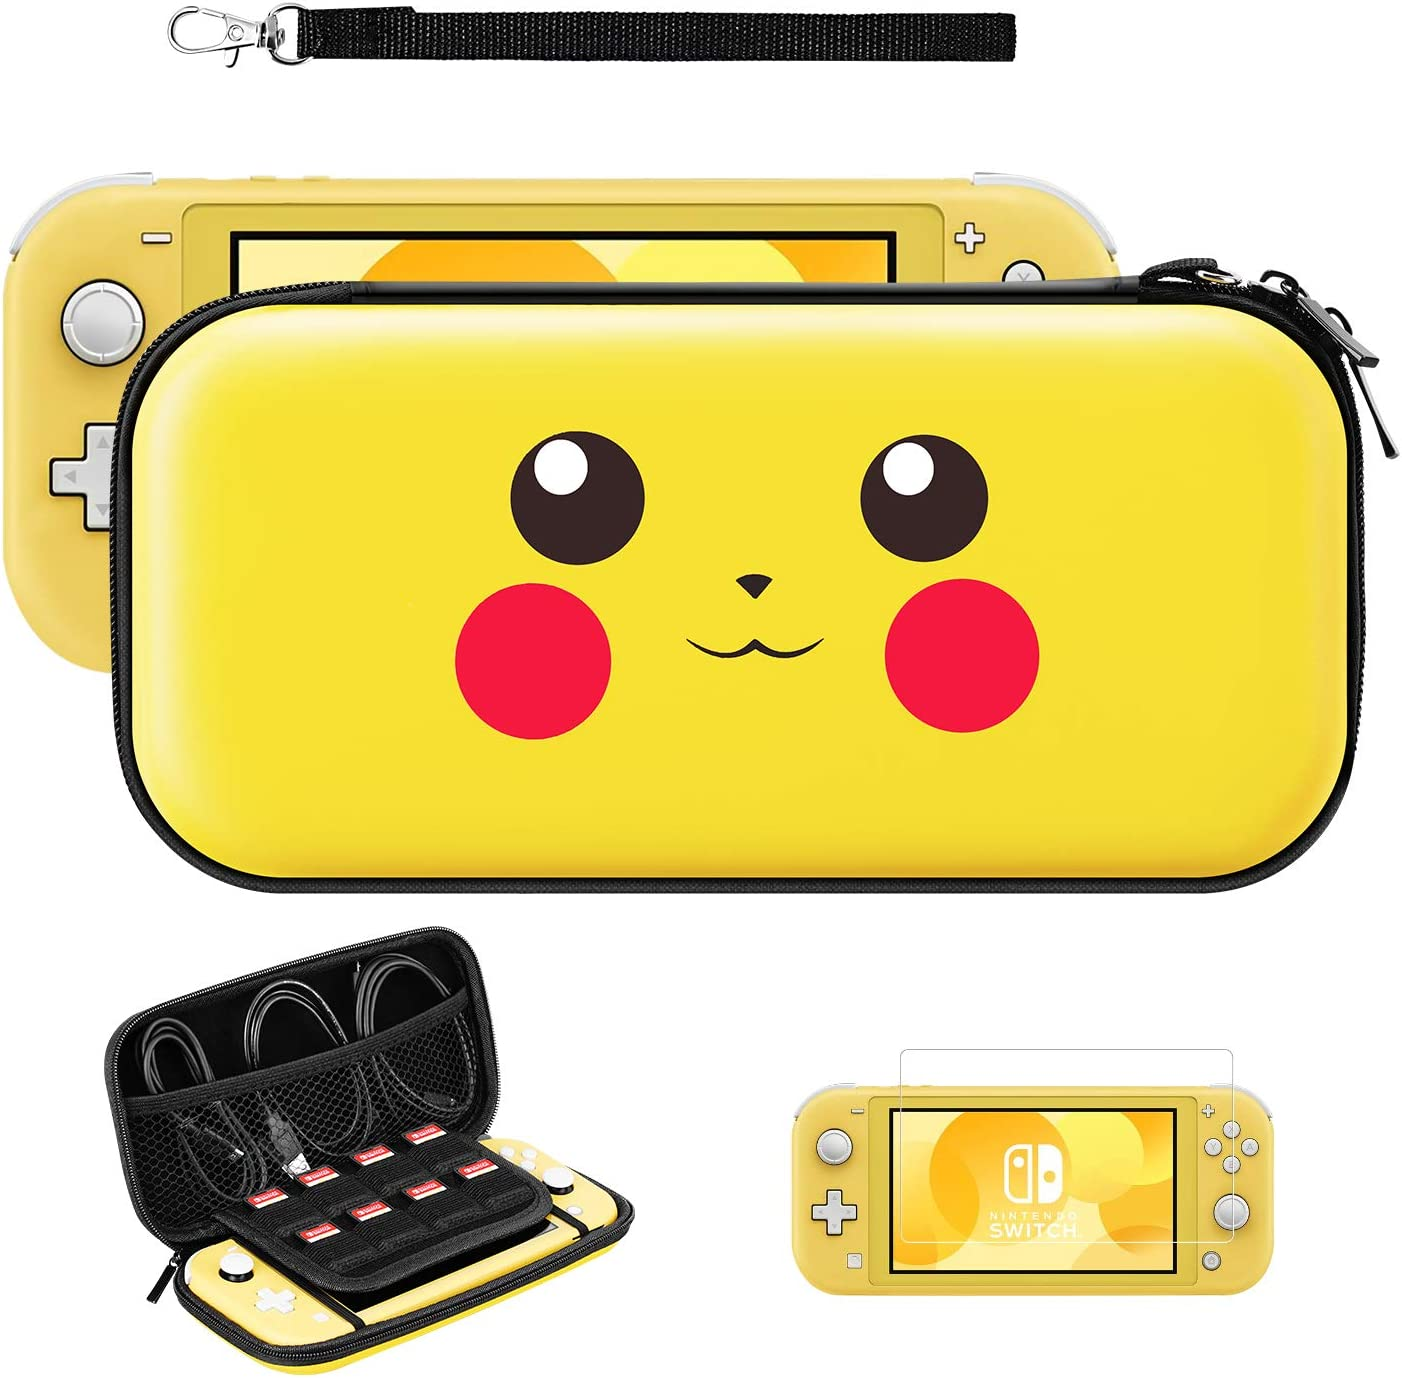 JINGDU Carrying Case for Nintendo Switch Lite,3 in 1 Protective Portable Hard Shell Storage Bag with 8 Game Card Slots,Travel Cover Bag Set Include Screen Protector & Hand Strap